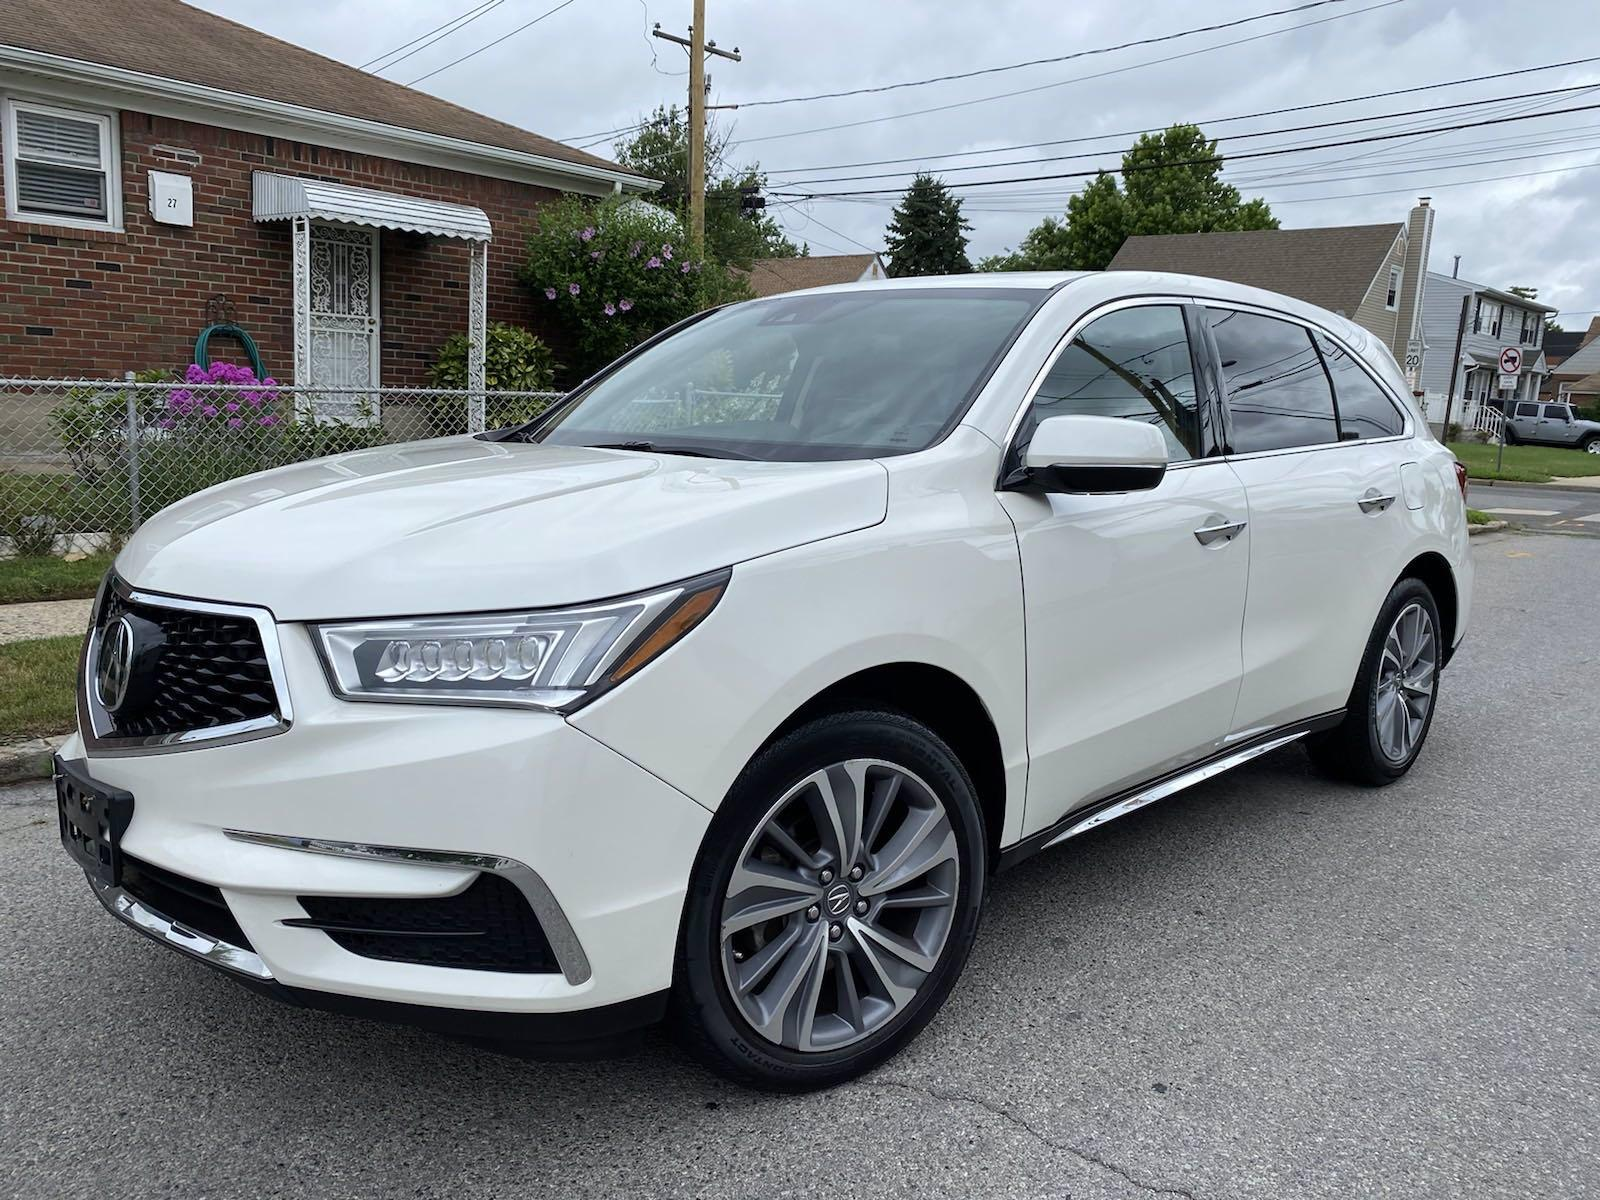 Used-2017-Acura-MDX-w/Technology-Pkg